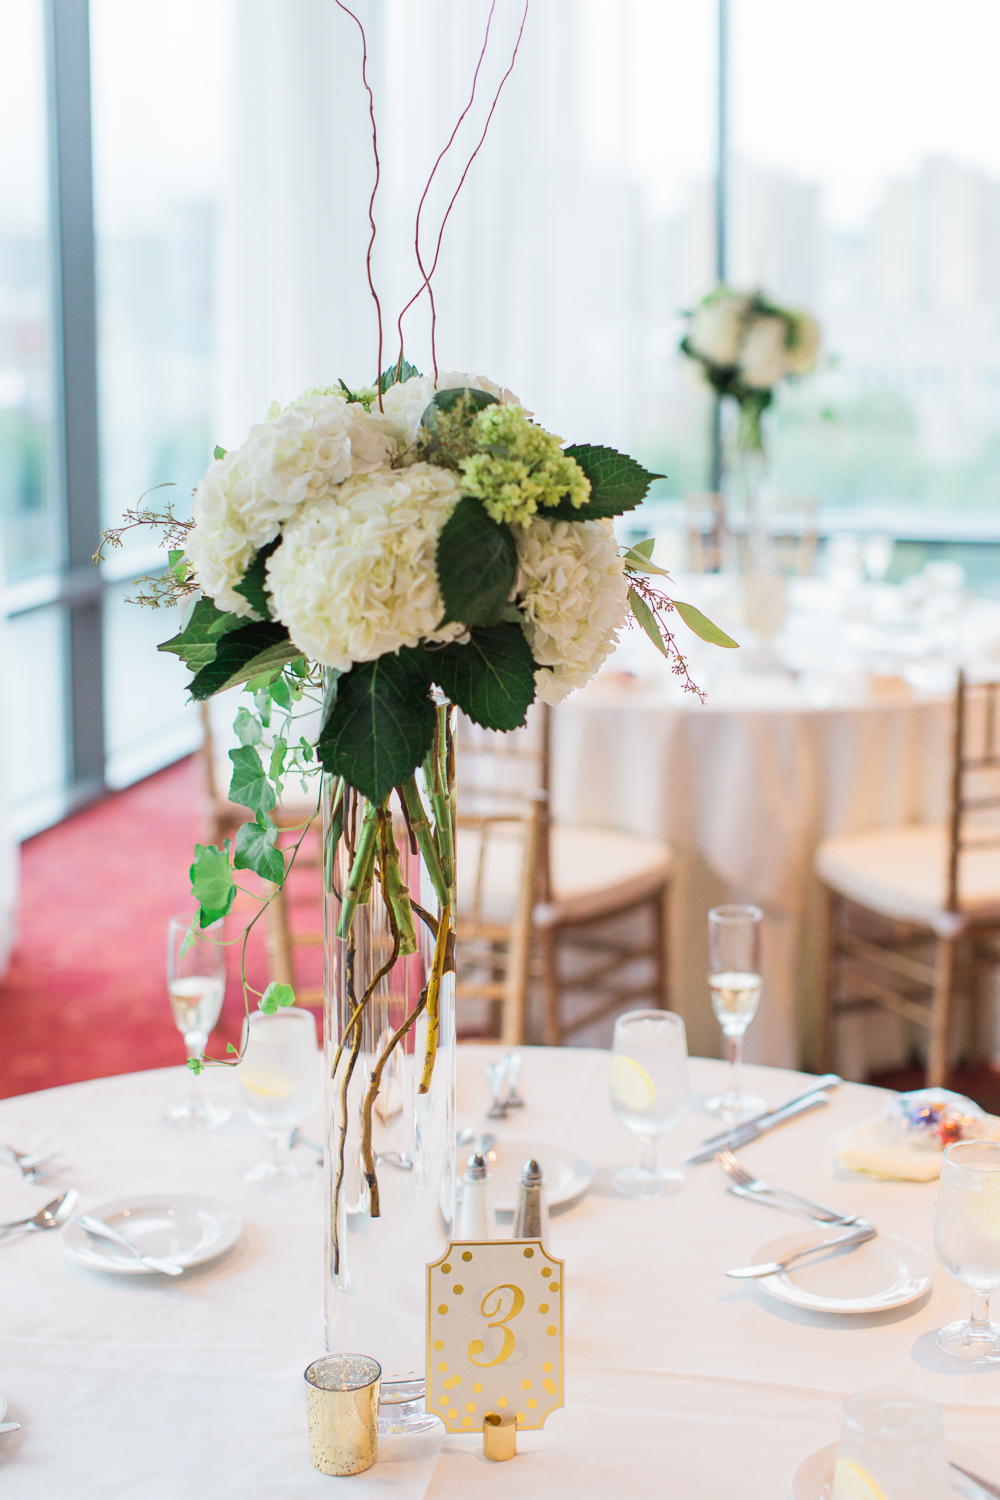 hyatt-regency-cambridge-wedding-photography-79